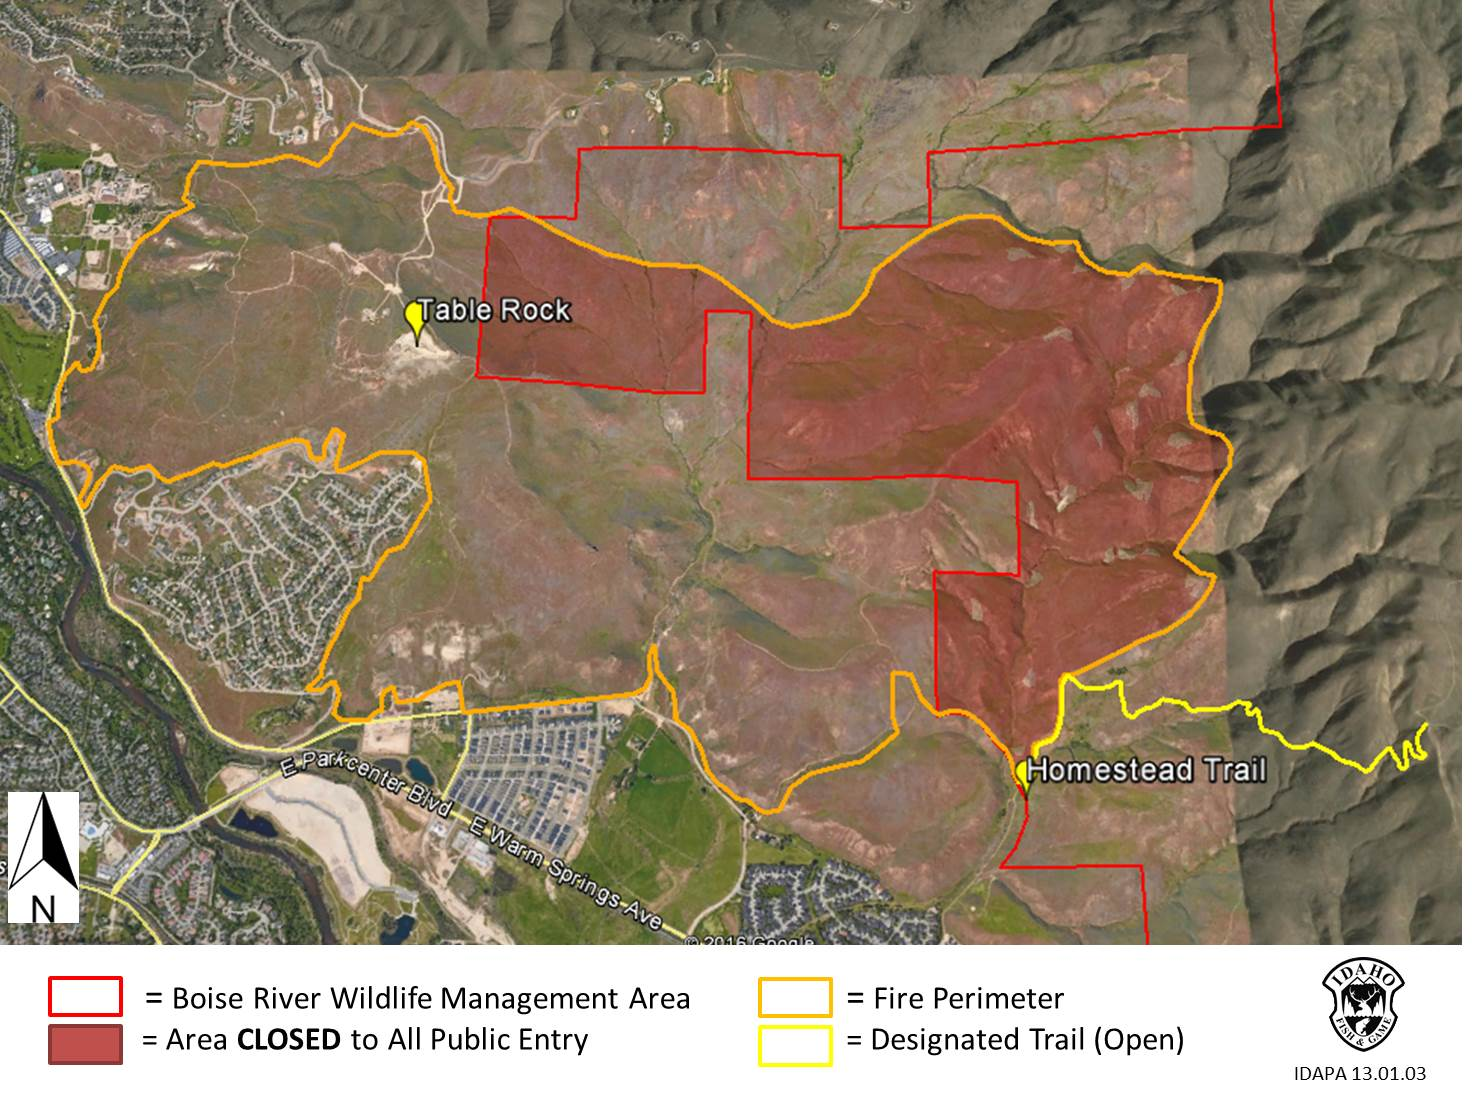 Wildfire closes portion of boise river wma idaho fish for Idaho fish and game maps